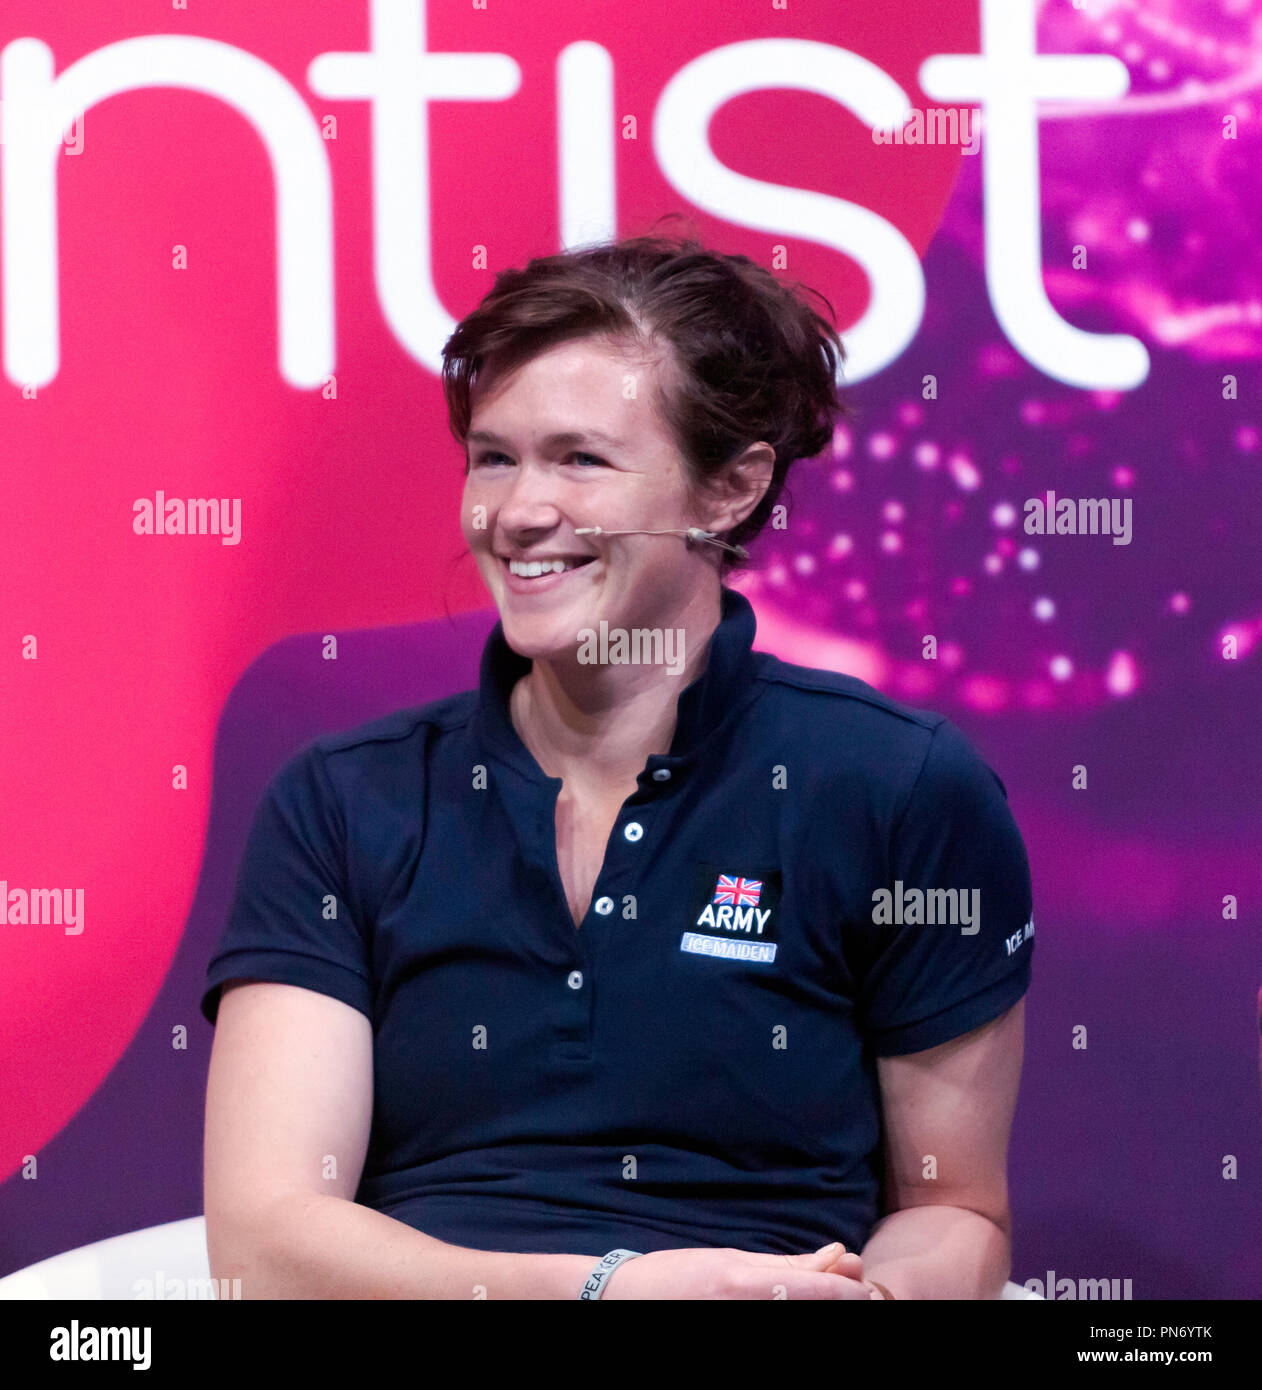 Explorer Nics Wetherill  participating in a talk about life in Space and the wild corners of Earth on the main stage at New Scientist Live, - Stock Image